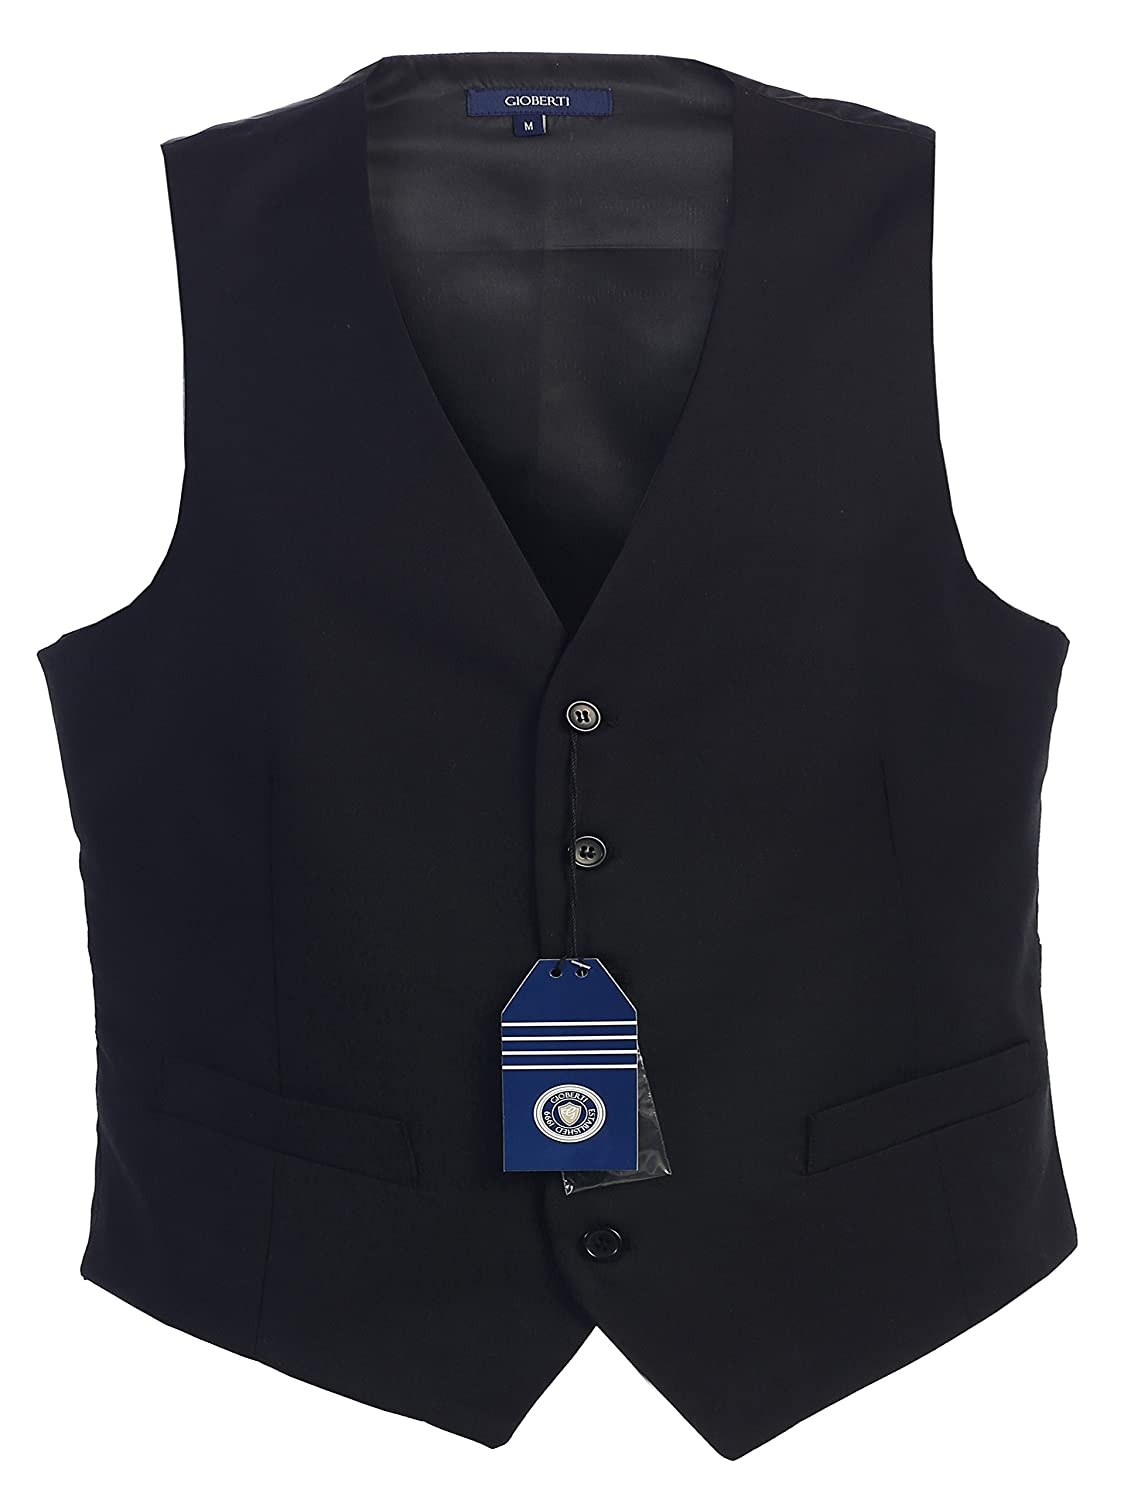 a1cdf4eb8d60 1940s Men's Formalwear Gioberti Mens 5 Button Formal Suit Vest $25.99 AT  vintagedancer.com